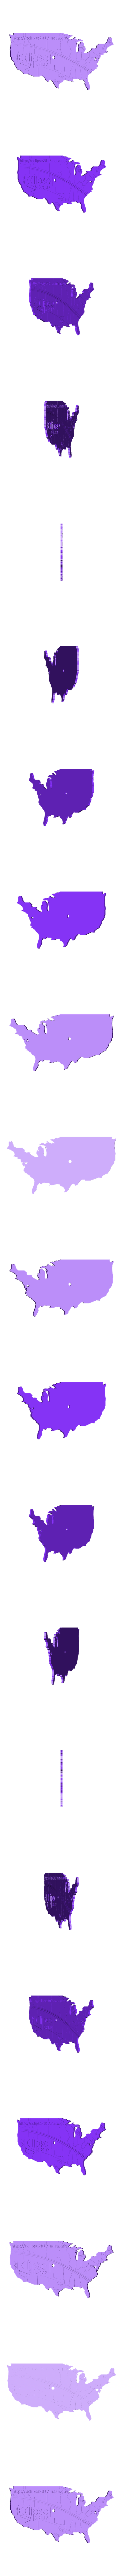 USA.STL Download free STL file Eclipse - USA and Territories • 3D printing model, spac3D